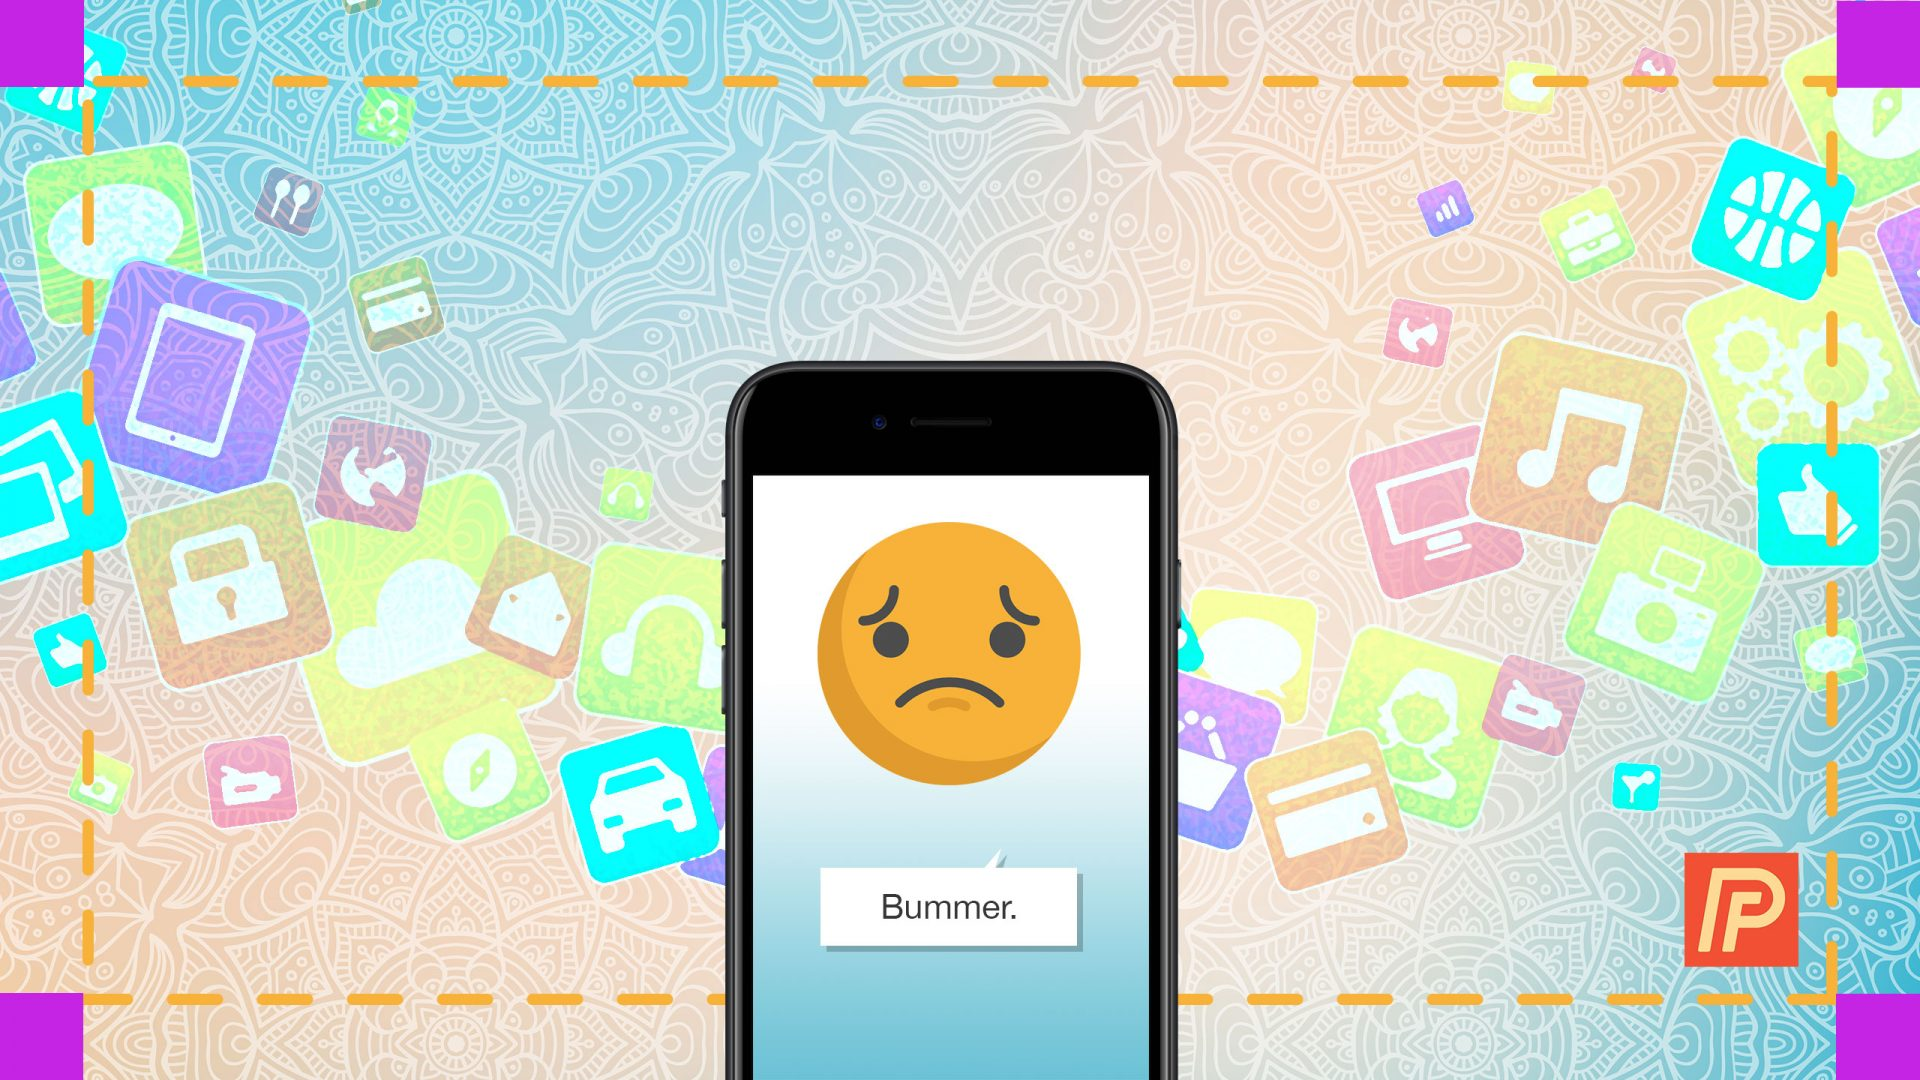 Why Do My iPhone Apps Keep Crashing? Here's The Fix